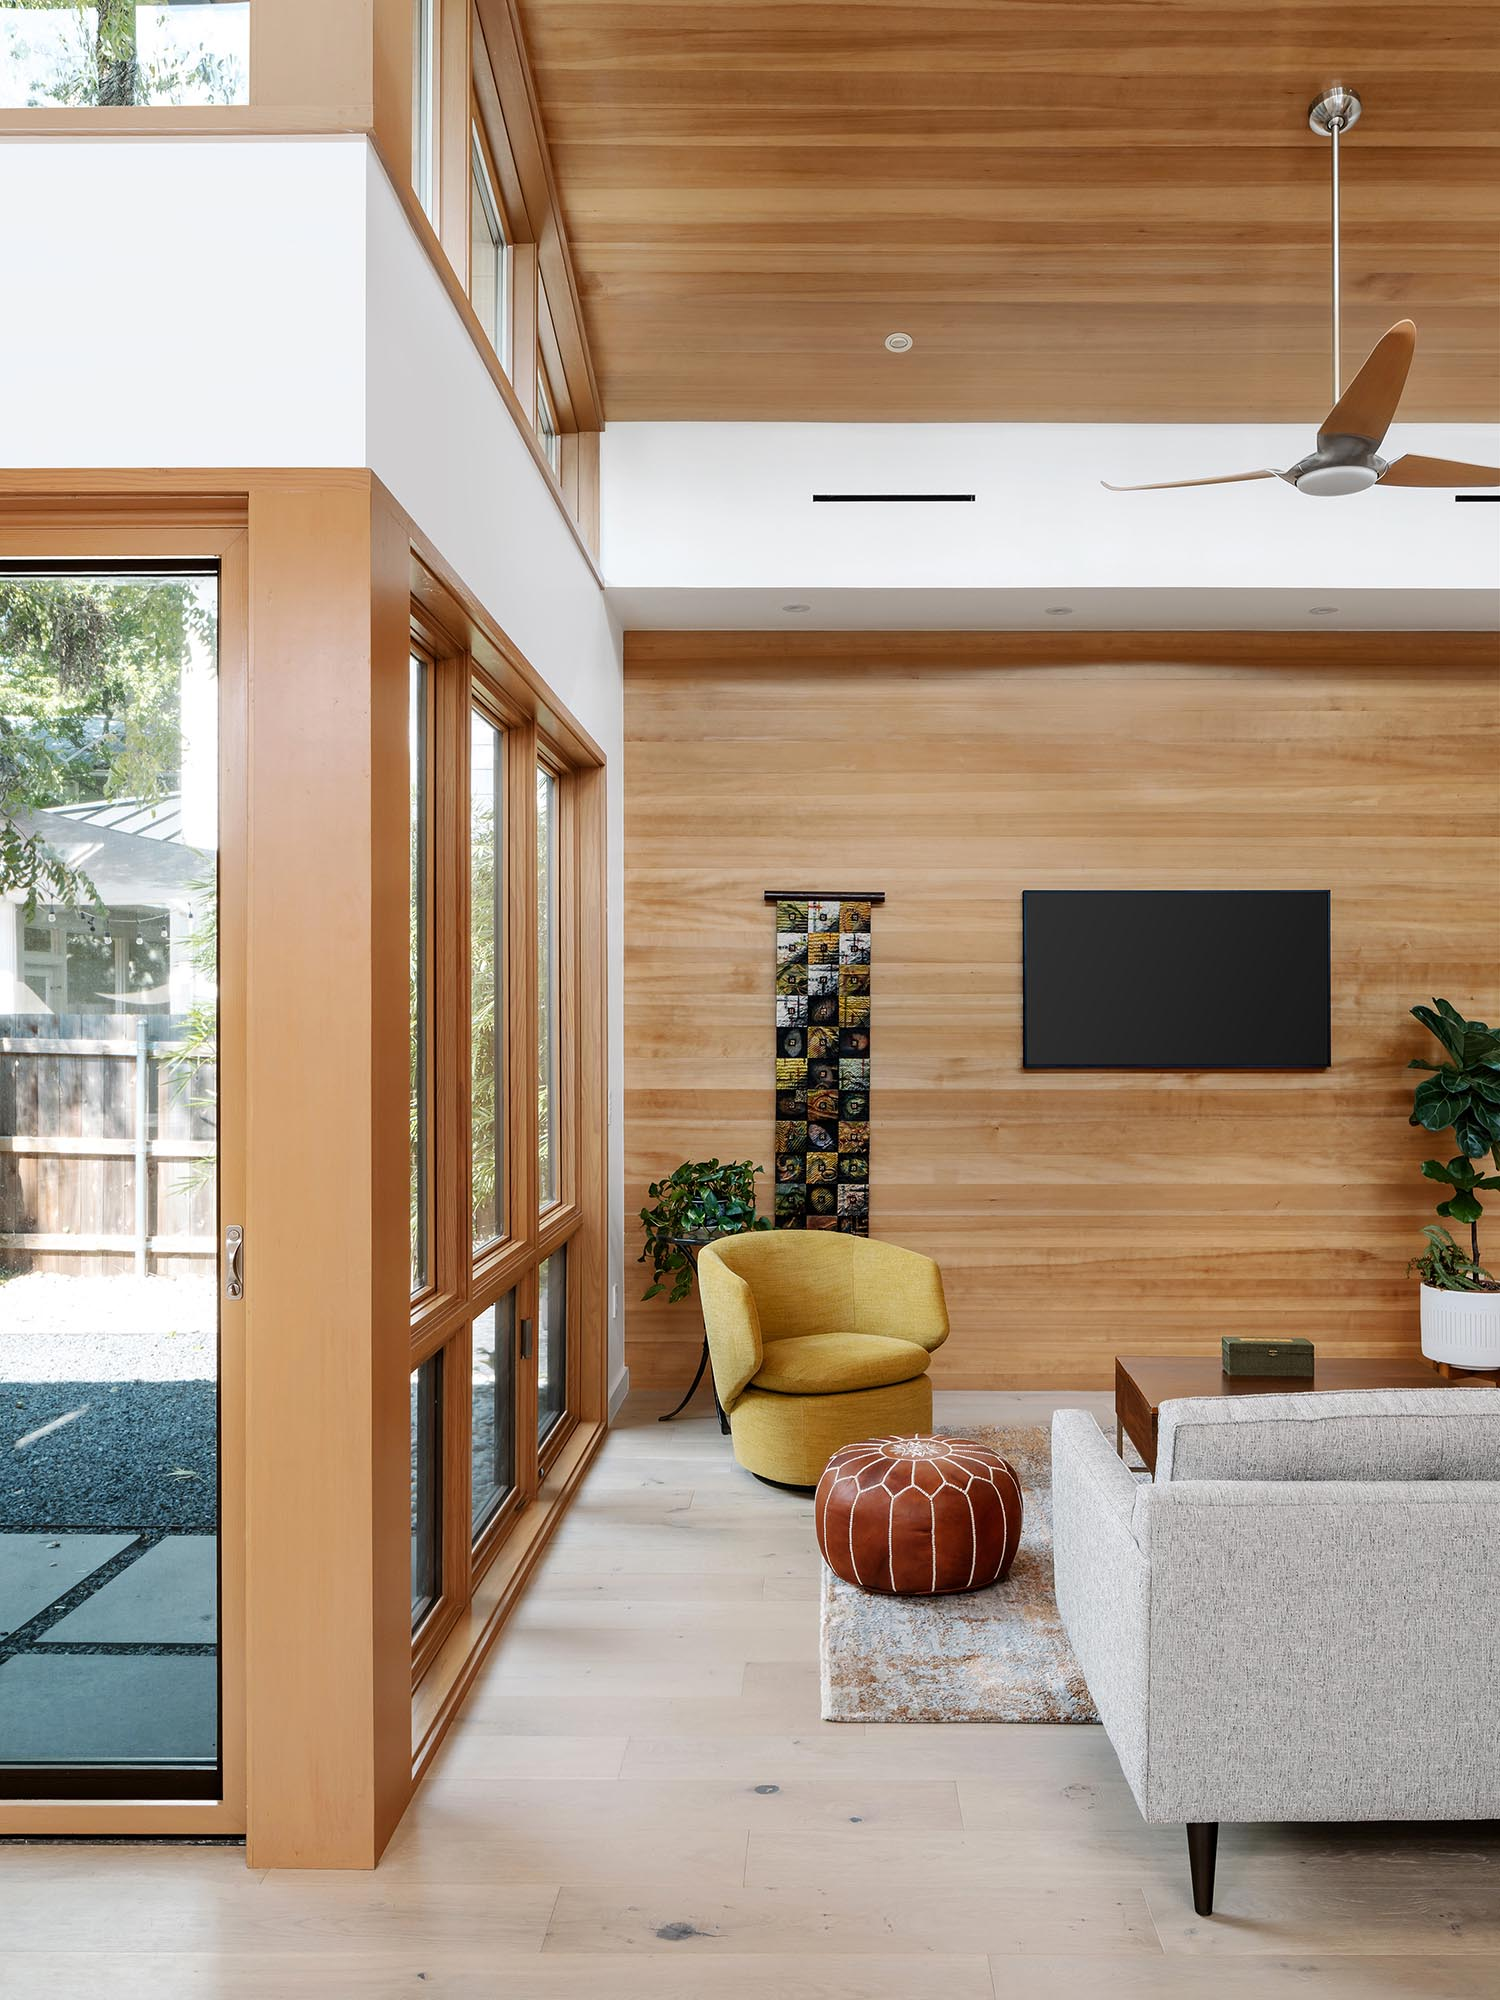 In this modern living room, a high sloped ceiling creates a lofty and open environment, while the wood adds a sense of warmth to the space.